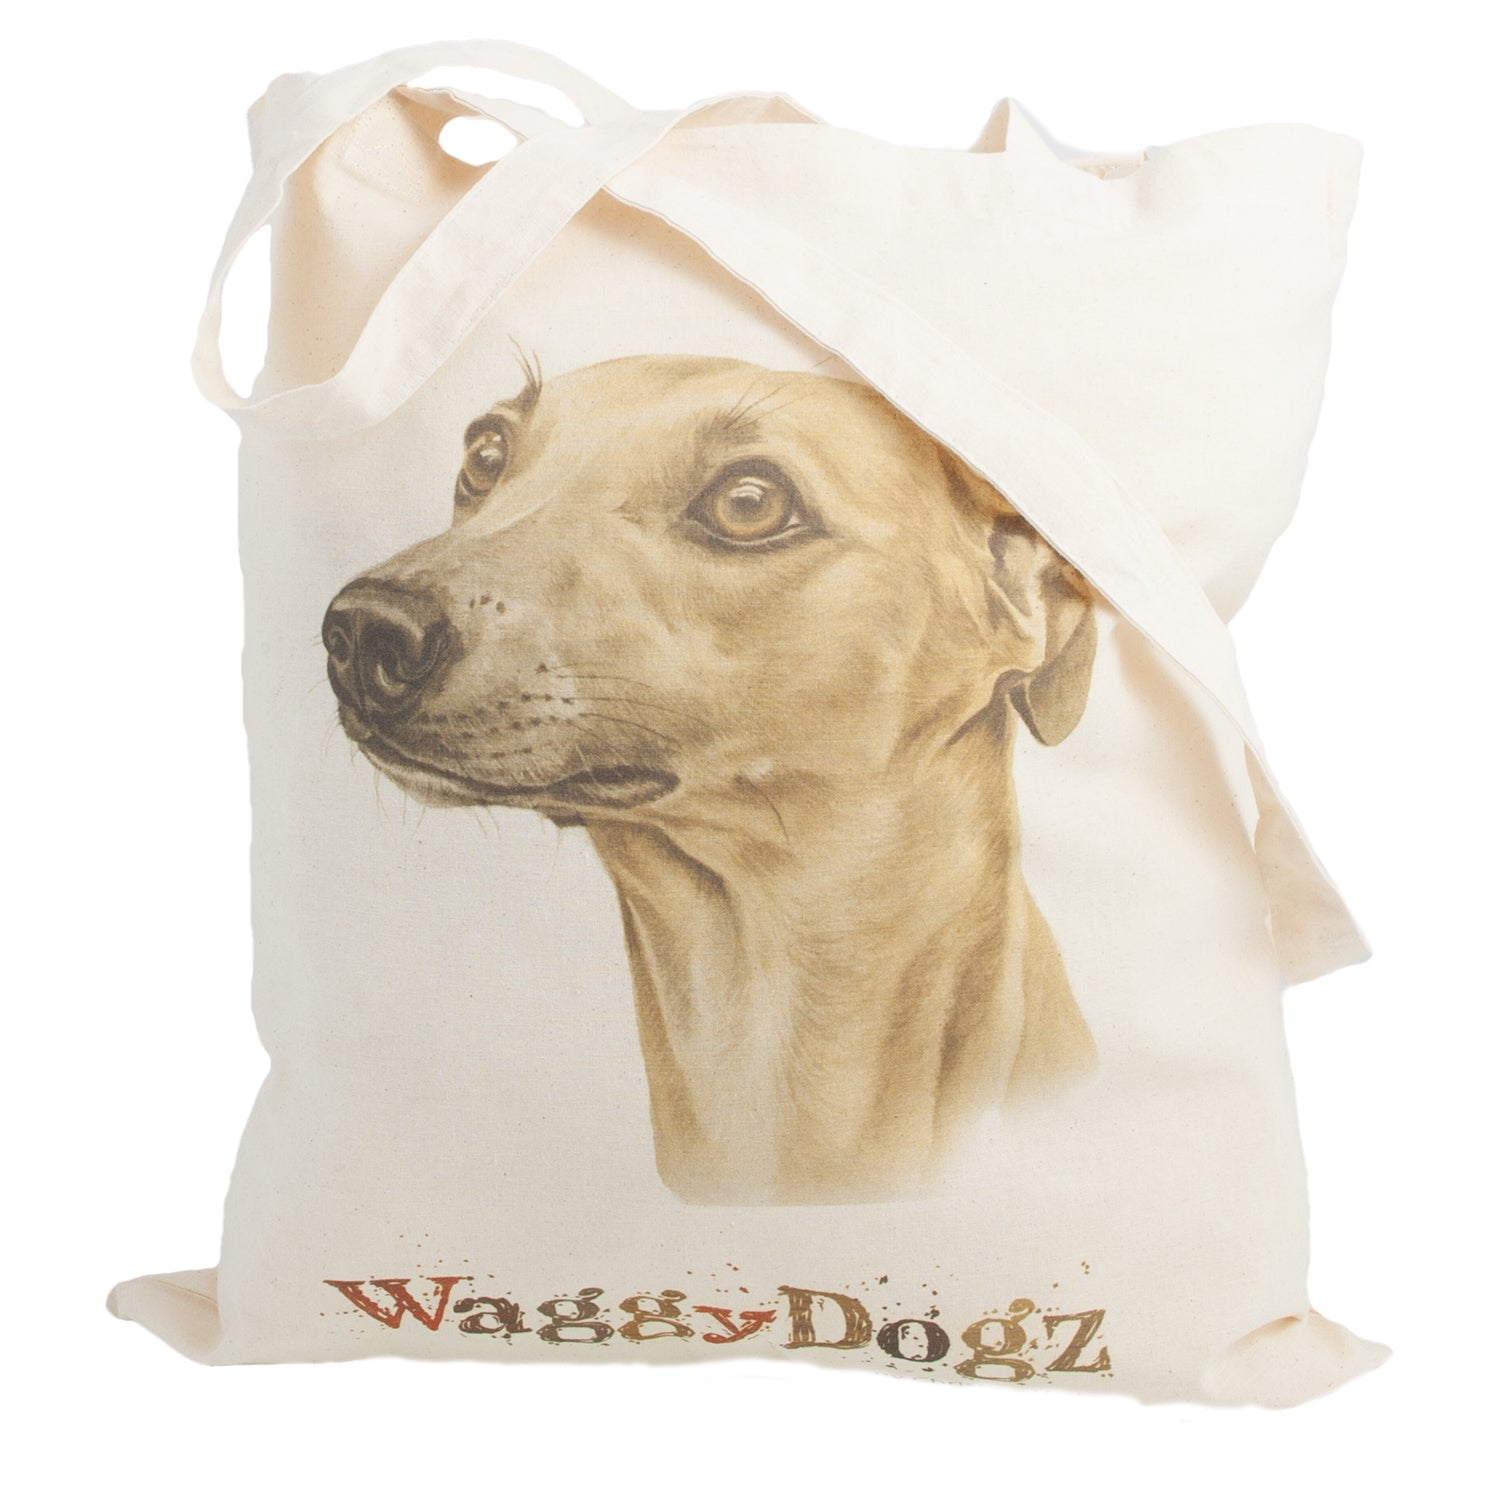 Dog Lover Gifts available at Dog Krazy Gifts. Fawn Whippet Tote Bag, part of our Christine Varley collection – available at www.dogkrazygifts.co.uk